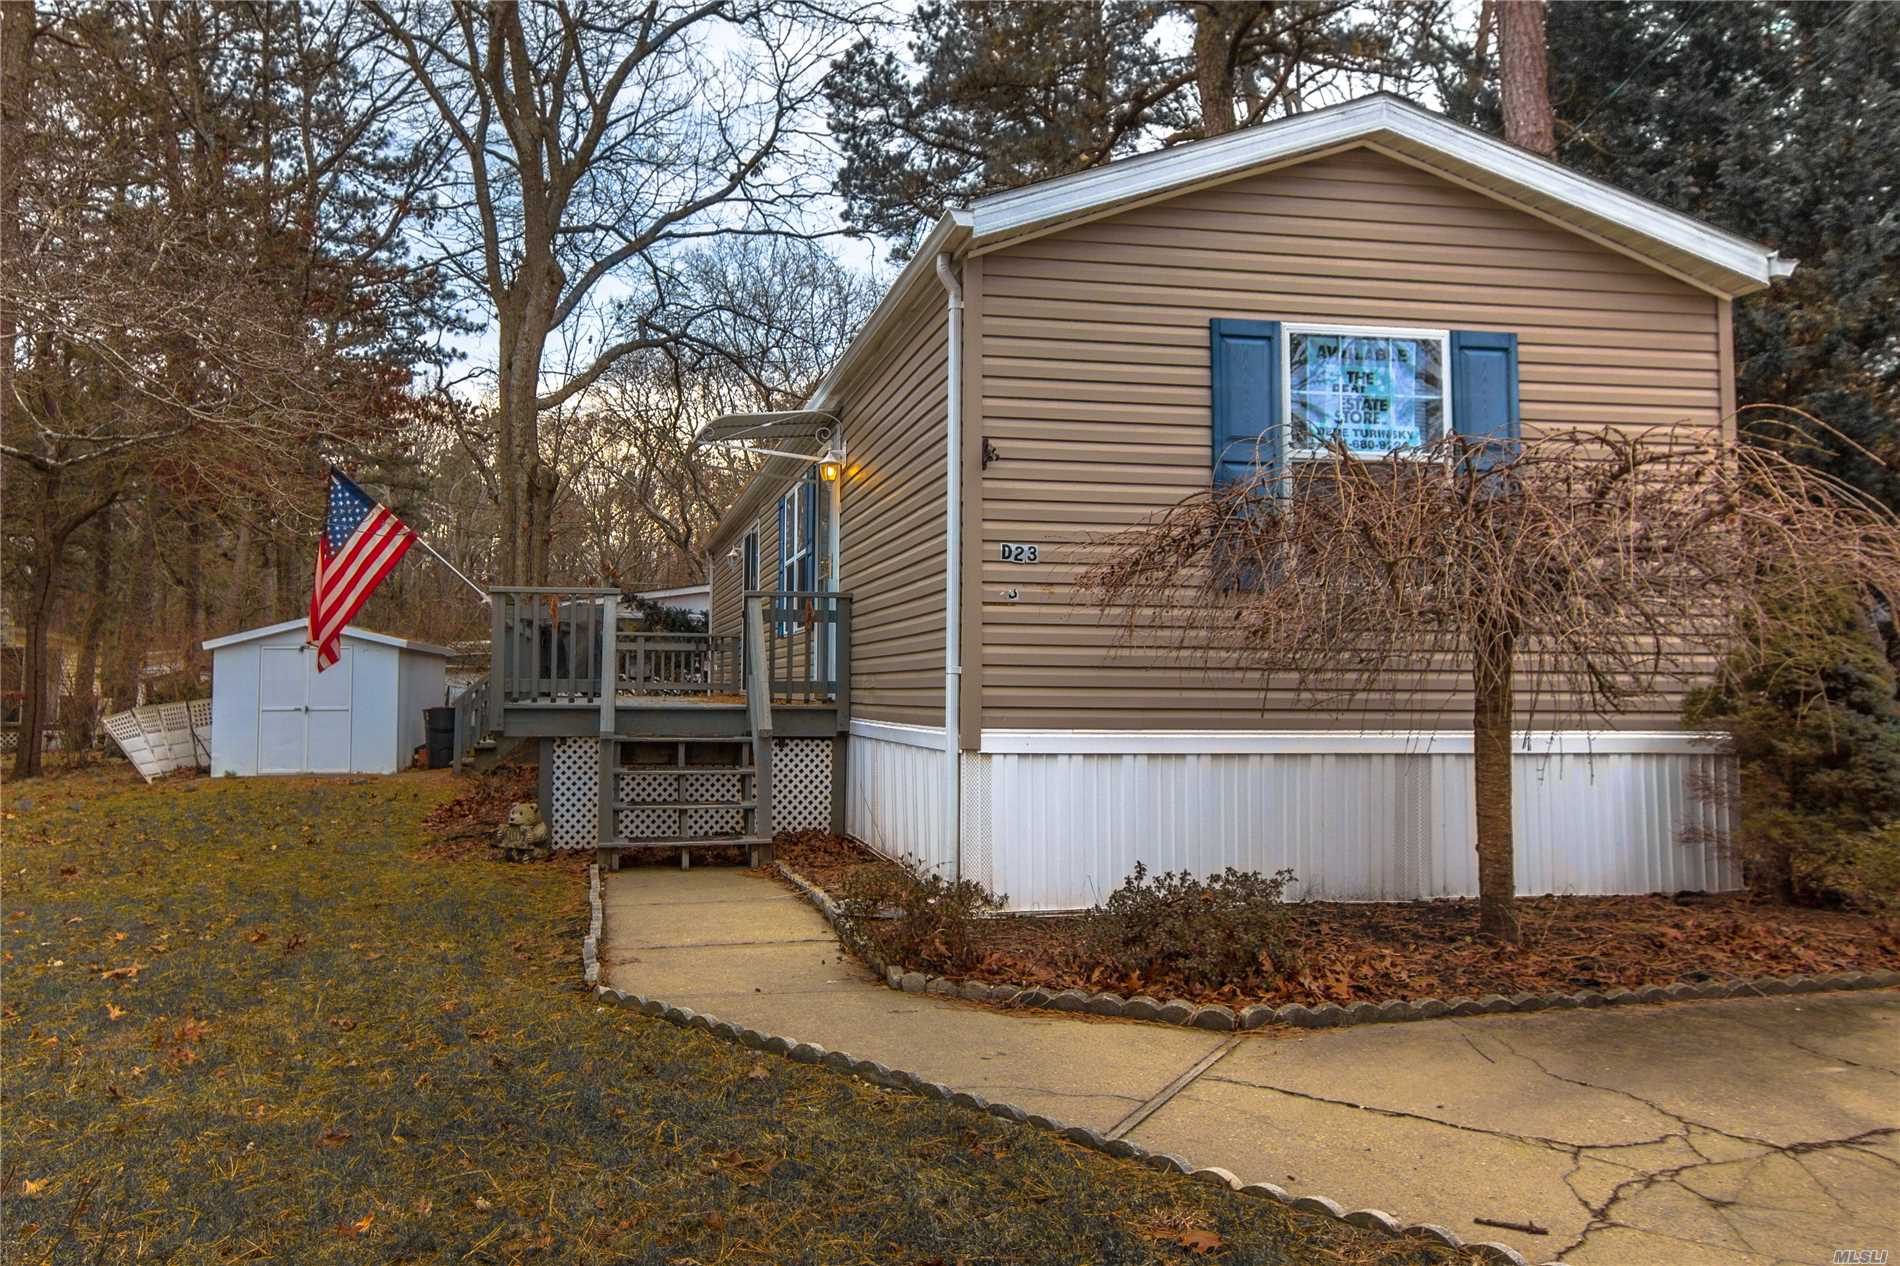 55 And Older Community. Cash Only. 2004 Skyline .Eat In Kitchen, Living Room, Two Bedrooms One And A Half Baths. New Flooring.Big Deck. Large Shed. New Insulation Underneath Unit.Land Rent Is 738 Per Month Includes Water, Trash, Snow Removal, Cesspool Maintenance. Use Of The Clubhouse, Southampton Town Beach Rights. No Dogs Over 45 Pounds.